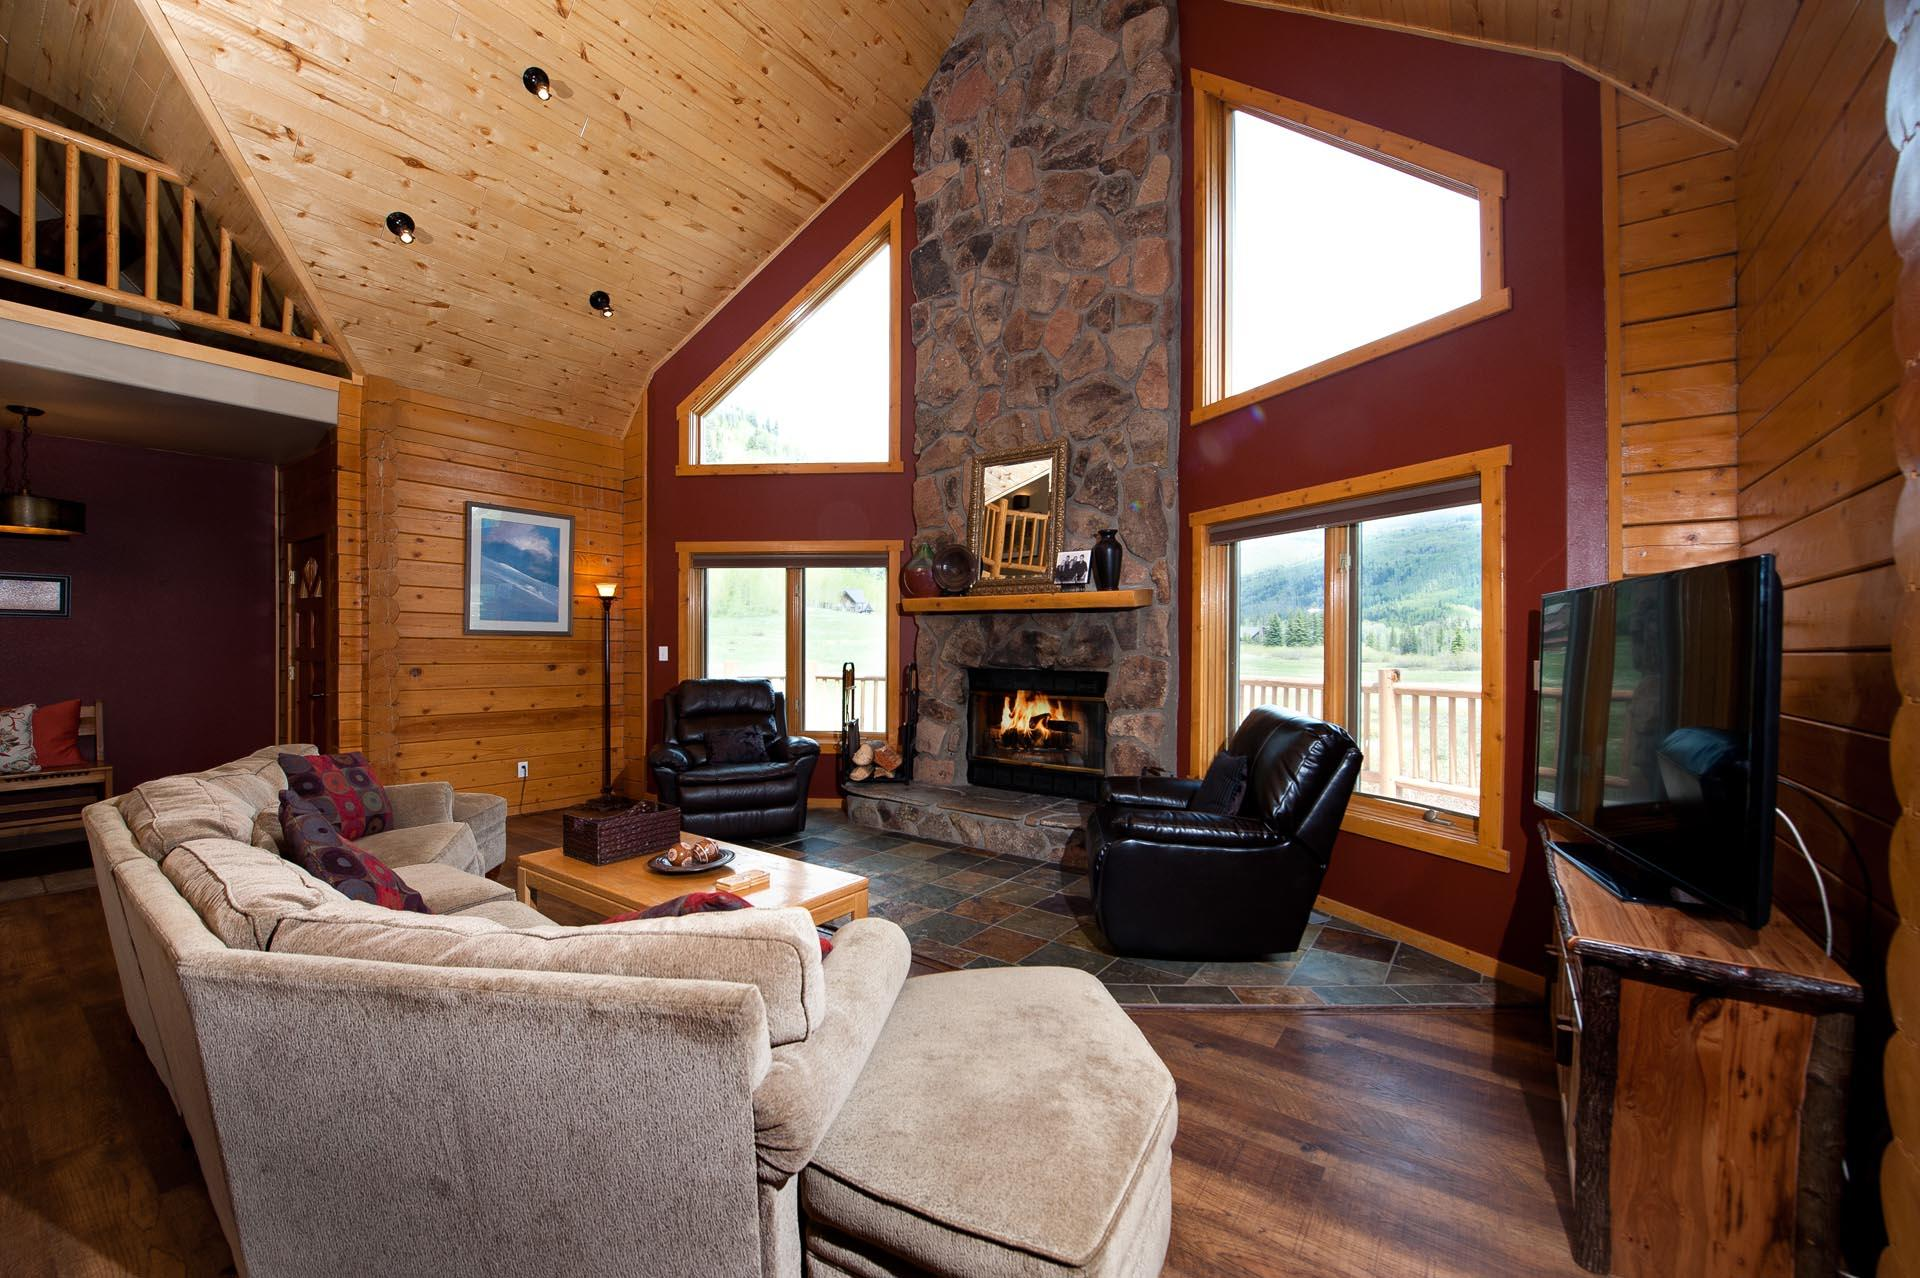 Colorado Log Cabin with Unbelievable View of Engineer Mountain - Ping Pong/Fire Pit - Heated Pool/Hot Tubs